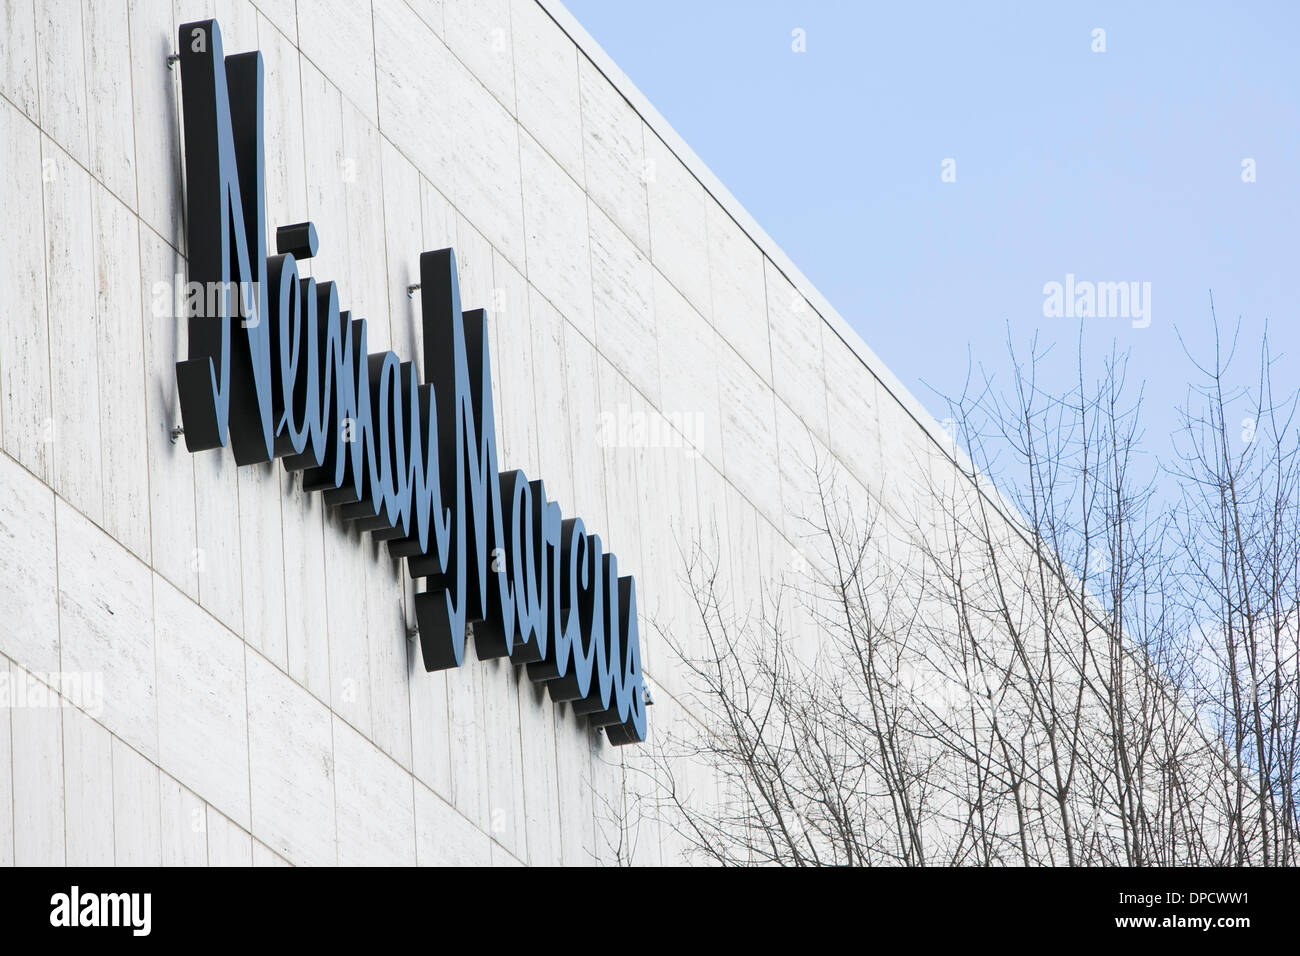 Washington DC, USA. 12th Jan, 2014. A Neiman Marcus store in Washington, D.C. on January 12, 2014. The luxury retailer is the latest retail chain to disclose a breach of customer credit card information. Credit:  Kristoffer Tripplaar/Alamy Live News - Stock Image